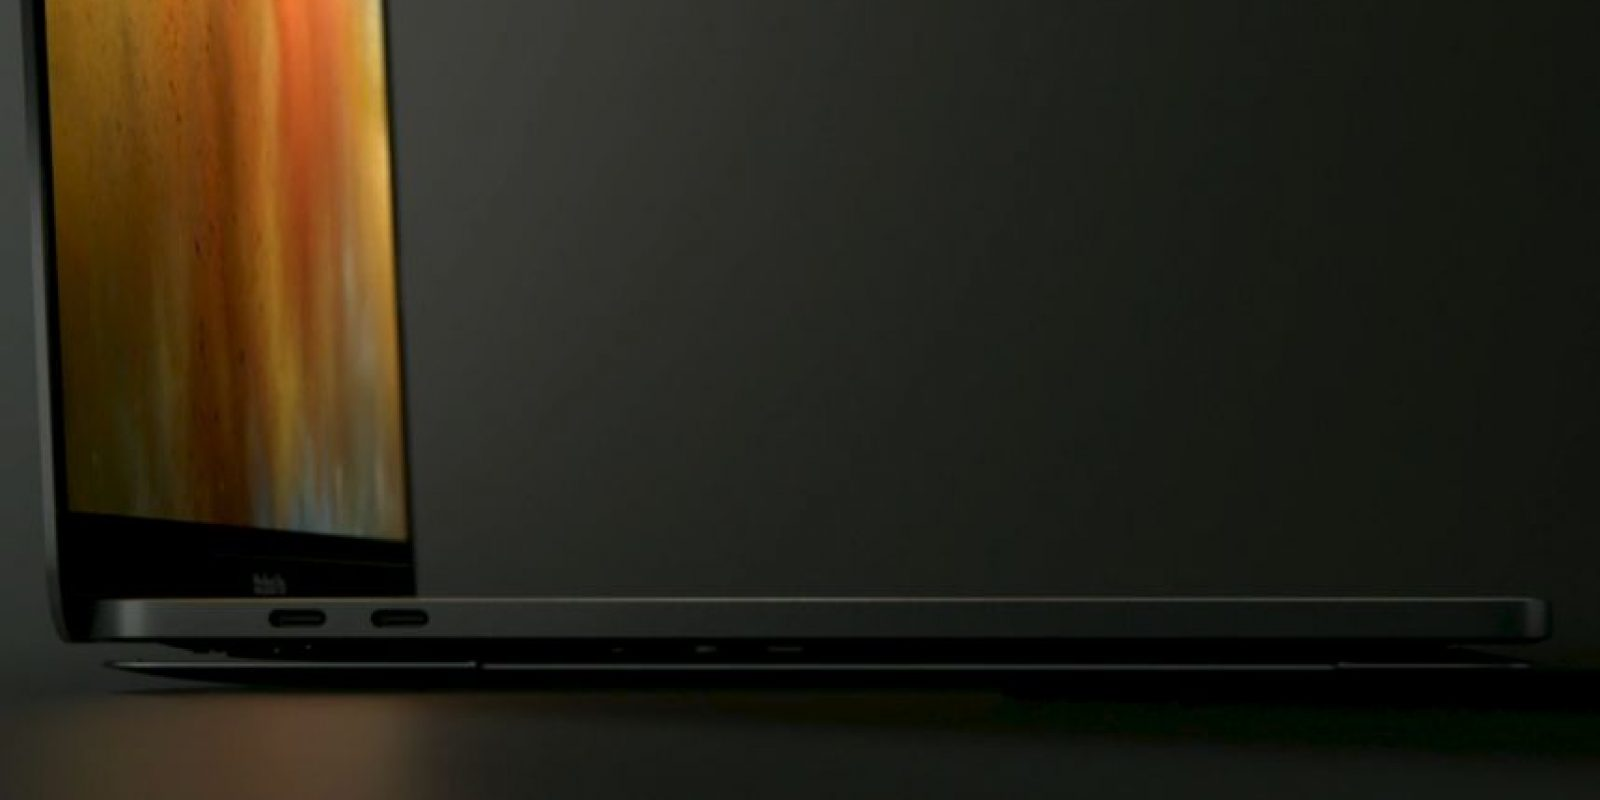 Apple presentó su nueva Macbook Foto: Apple